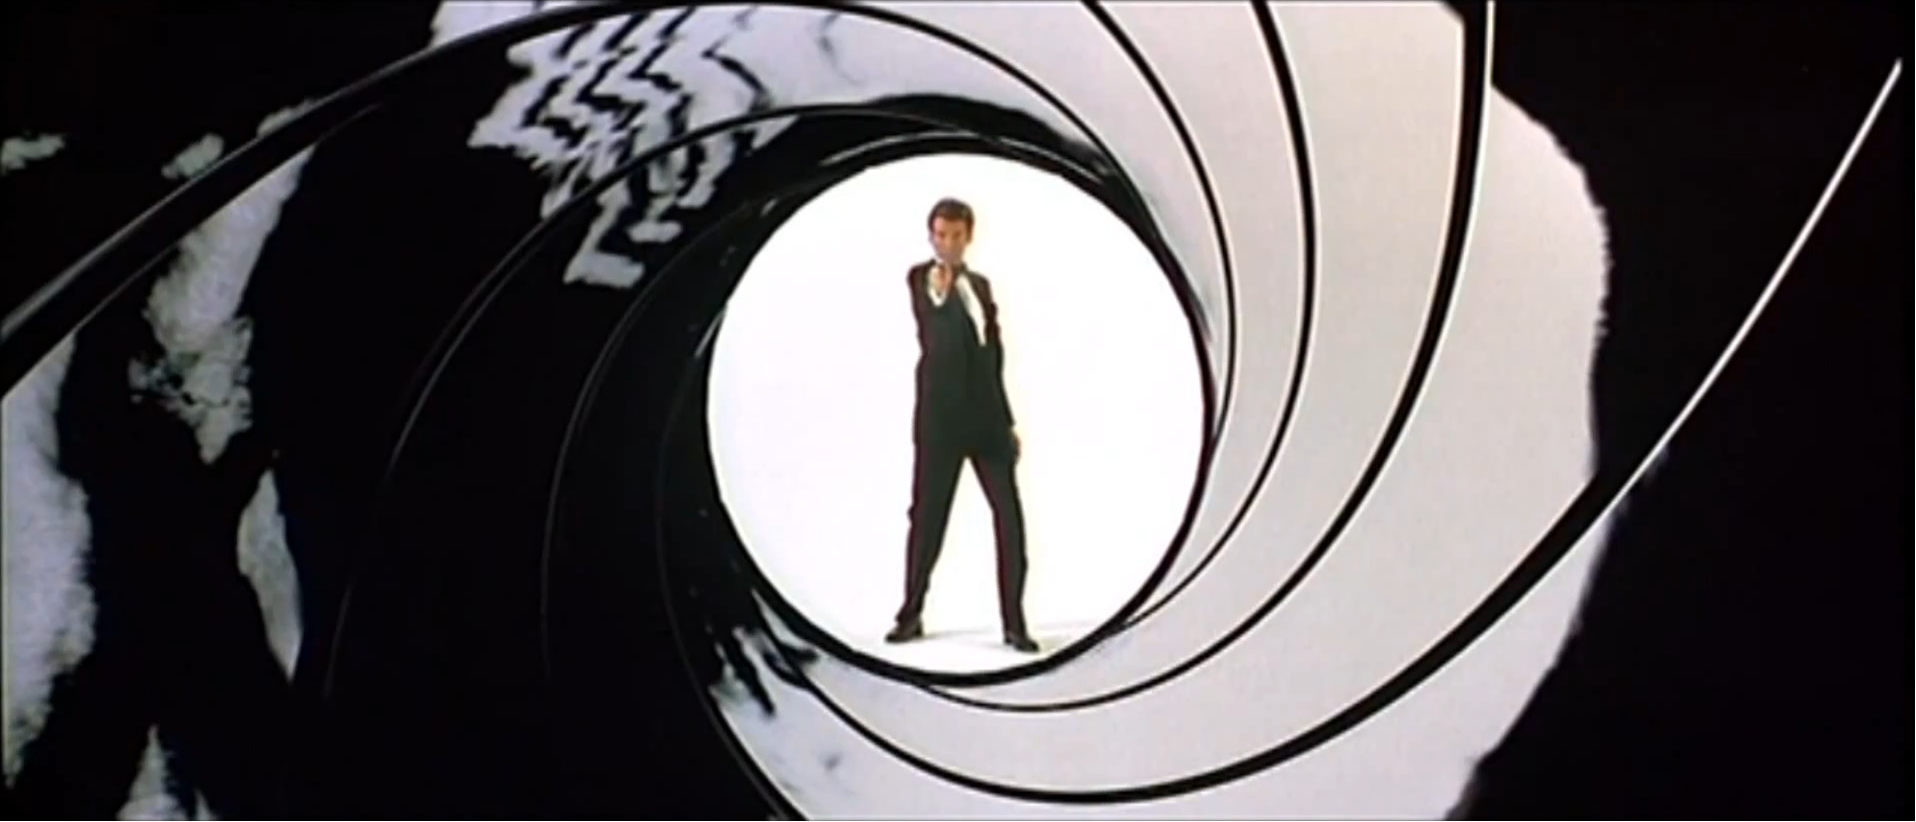 Pin By Gary Cook On Ultimate 007 James Bond Party James Bond Bond Movies